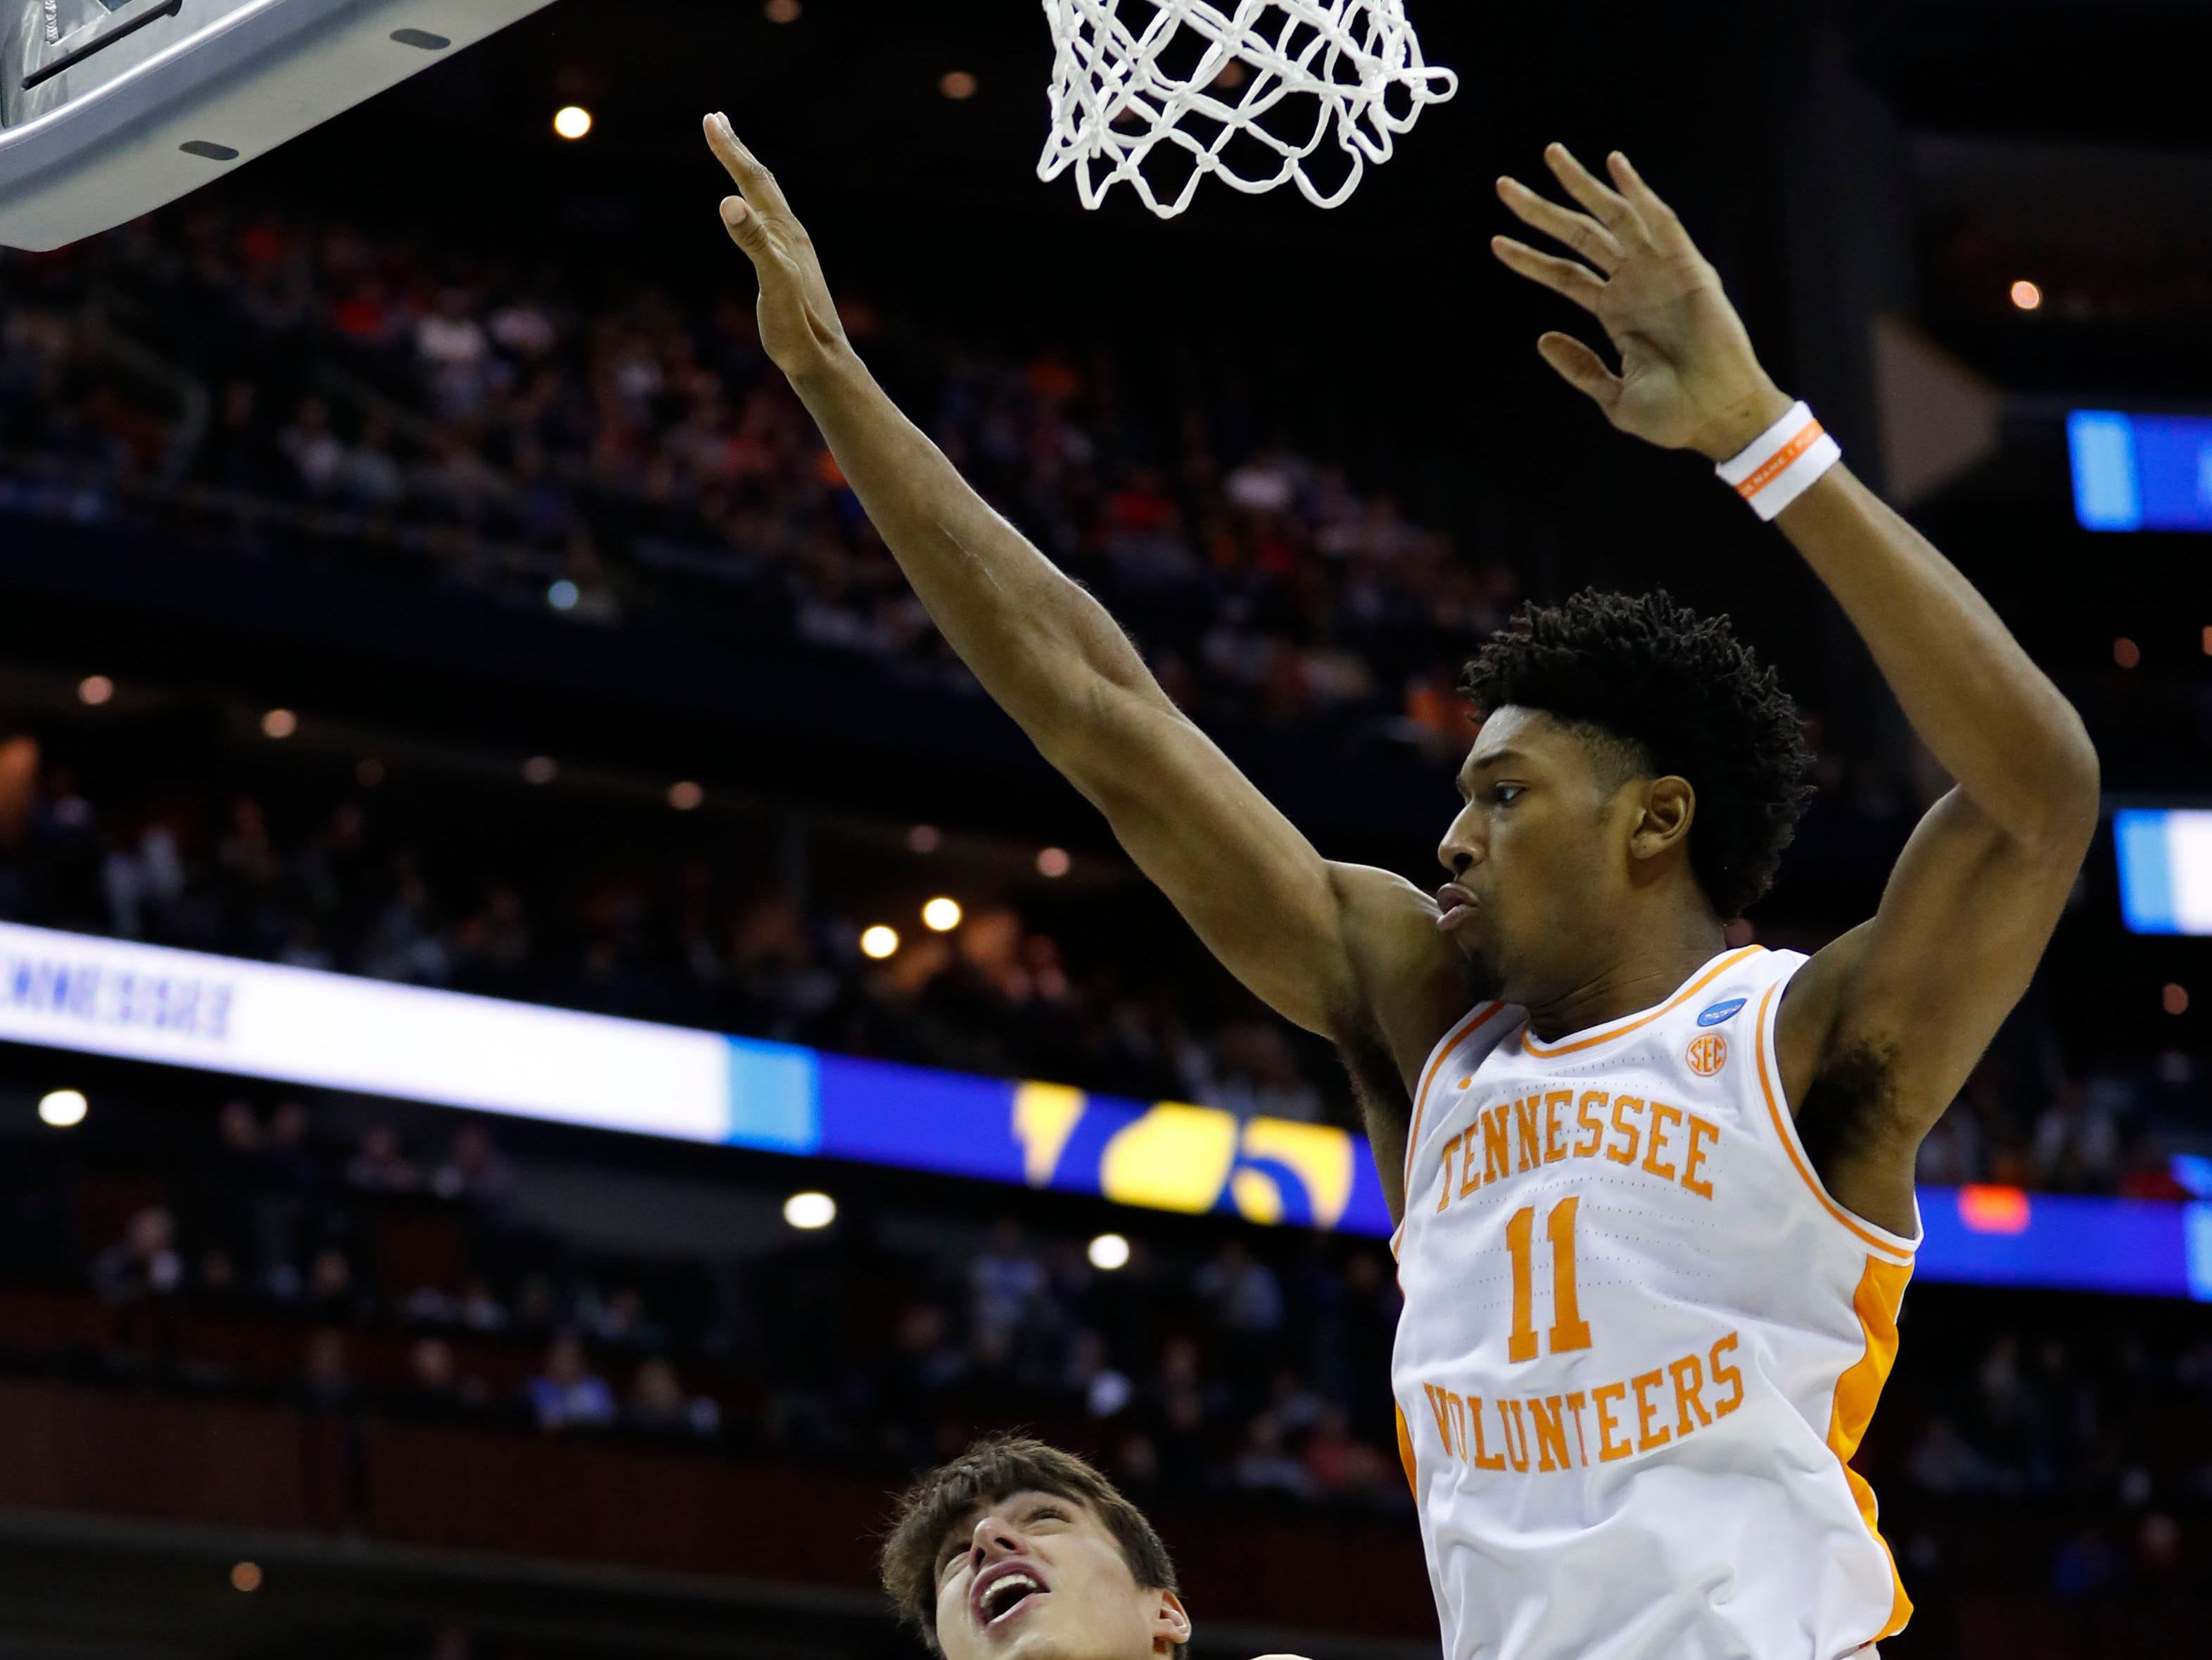 Tennessee Volunteers forward Kyle Alexander (11) jumps to defend Iowa Hawkeyes forward Luka Garza (55) in the first half in the second round of the 2019 NCAA Tournament at Nationwide Arena.